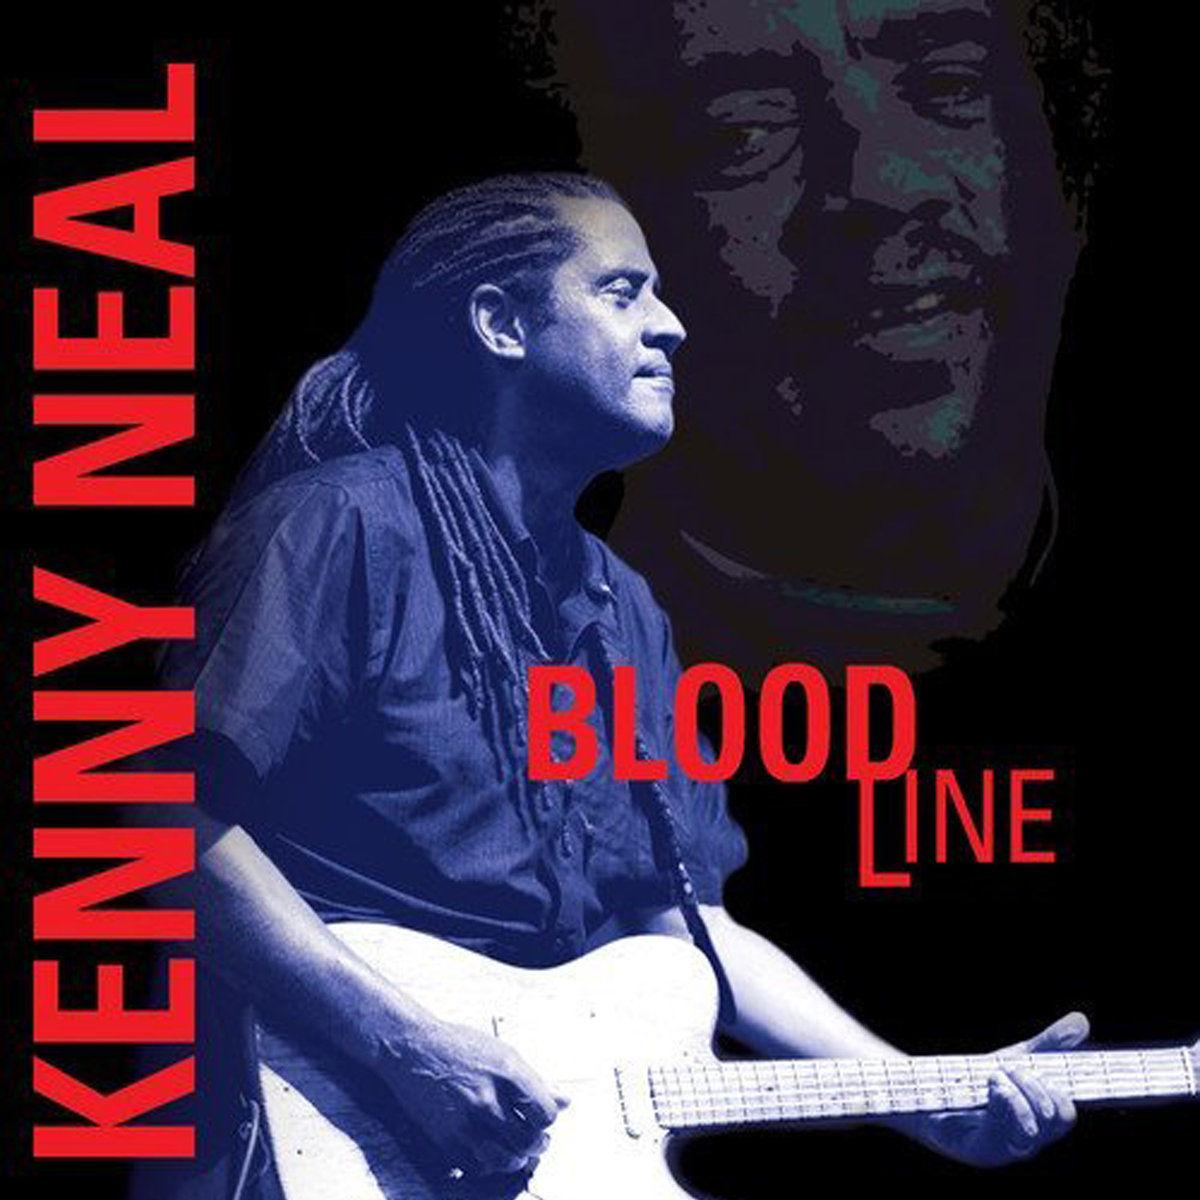 Bloodline Kenny Neal (album cover)